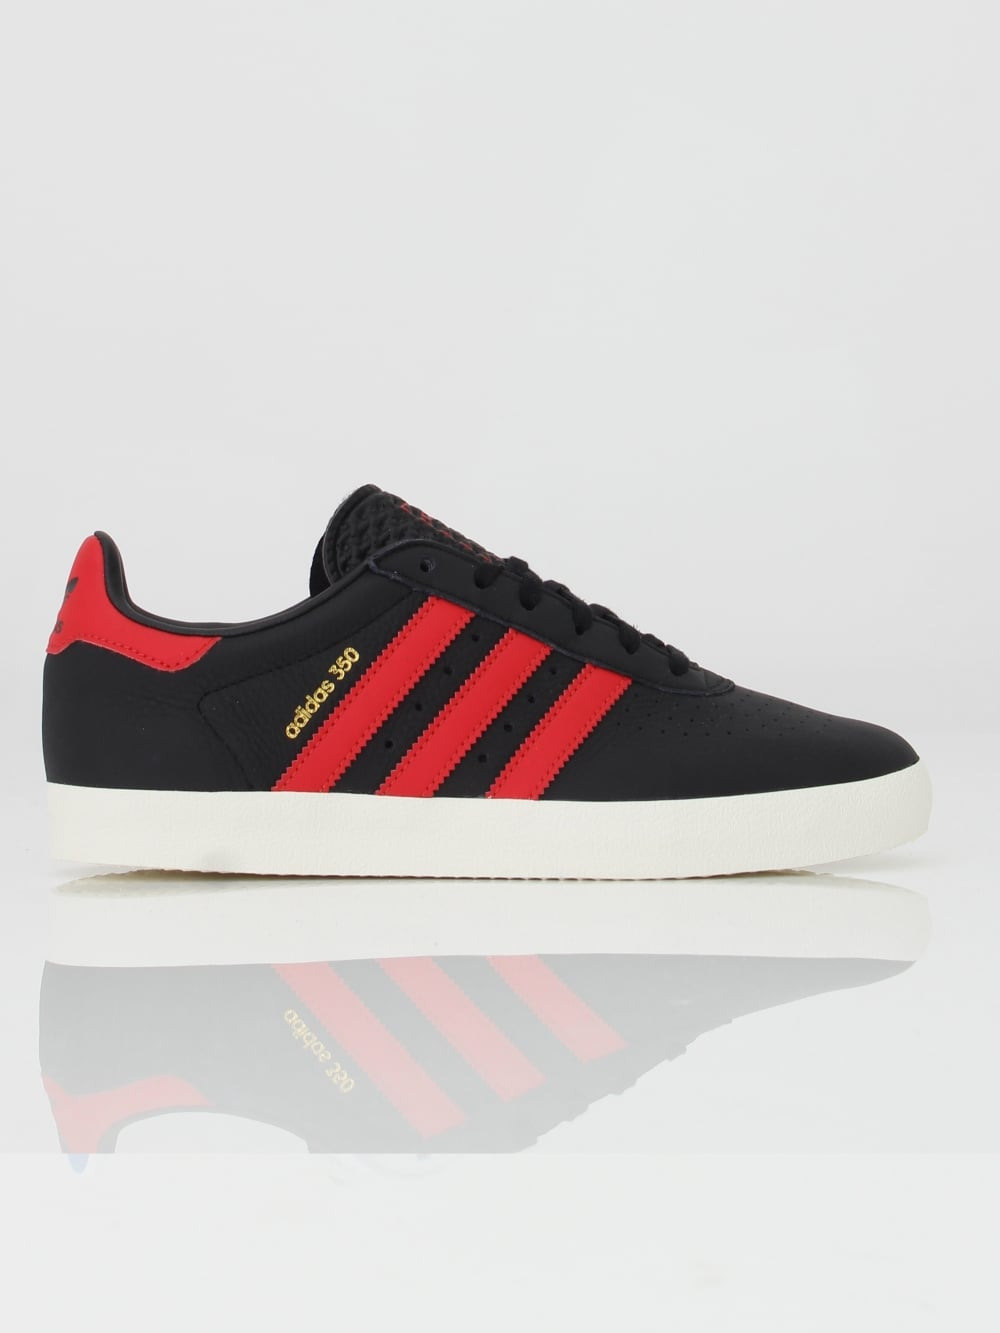 best service 93c11 54094 ... Trainers  Adidas Originals 350 -Core Black. Tap image to zoom. 350  -Core Black. 350 -Core Black